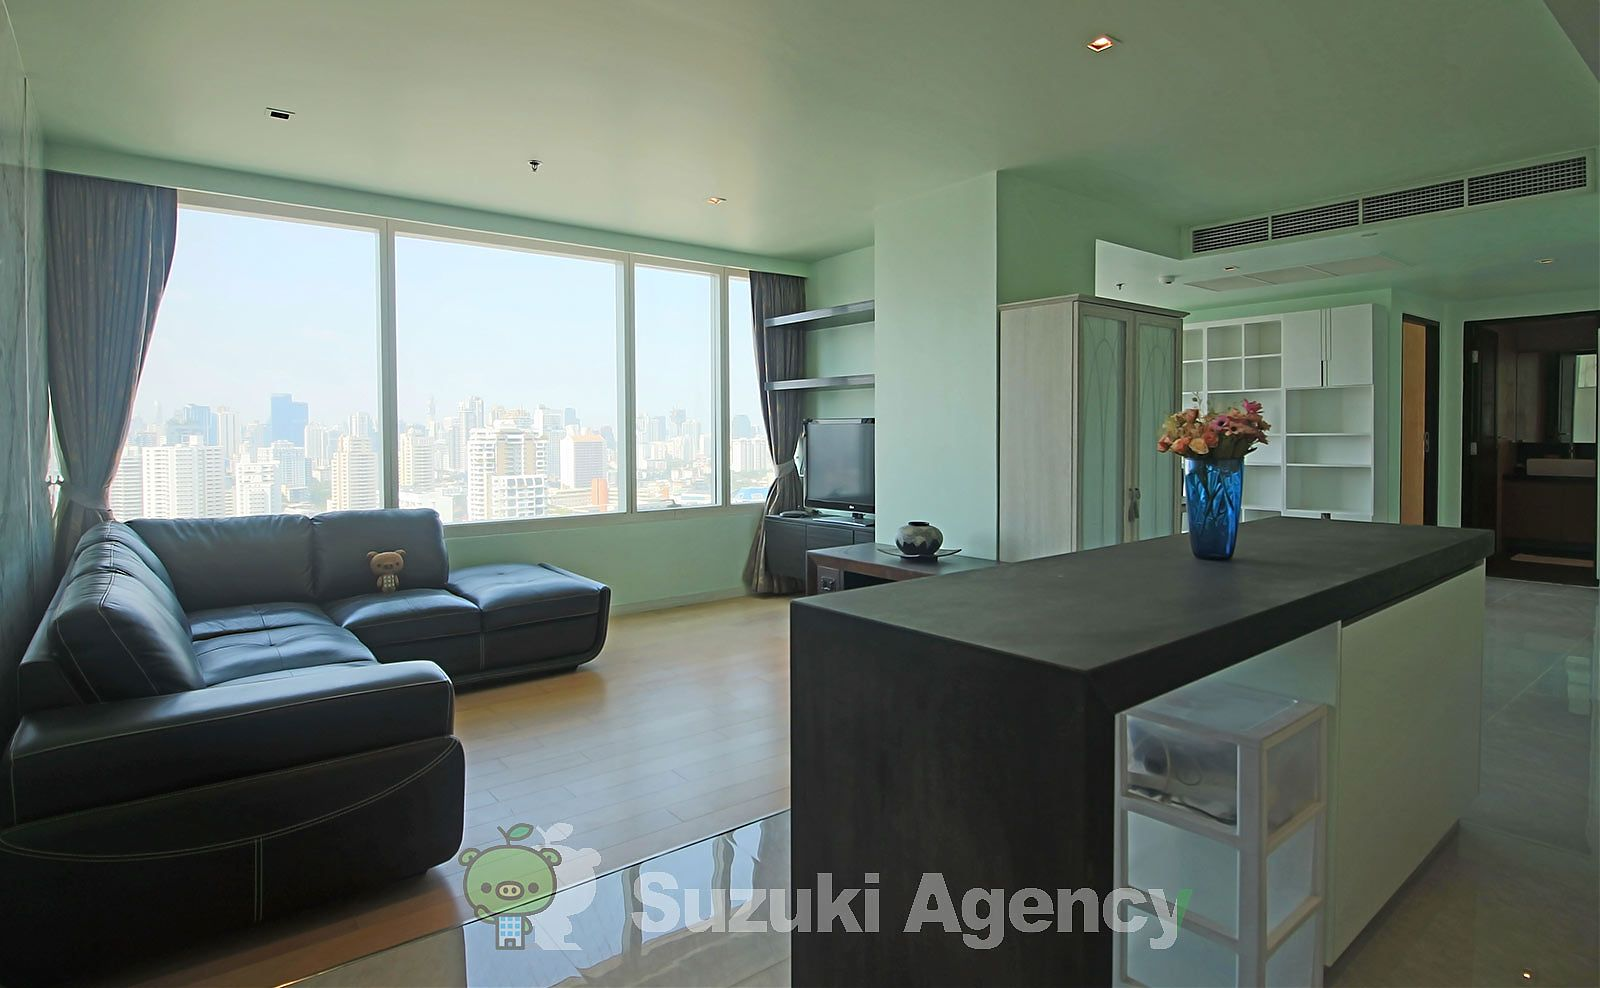 Eight Thonglor Residence:2Bed Room Photos No.2